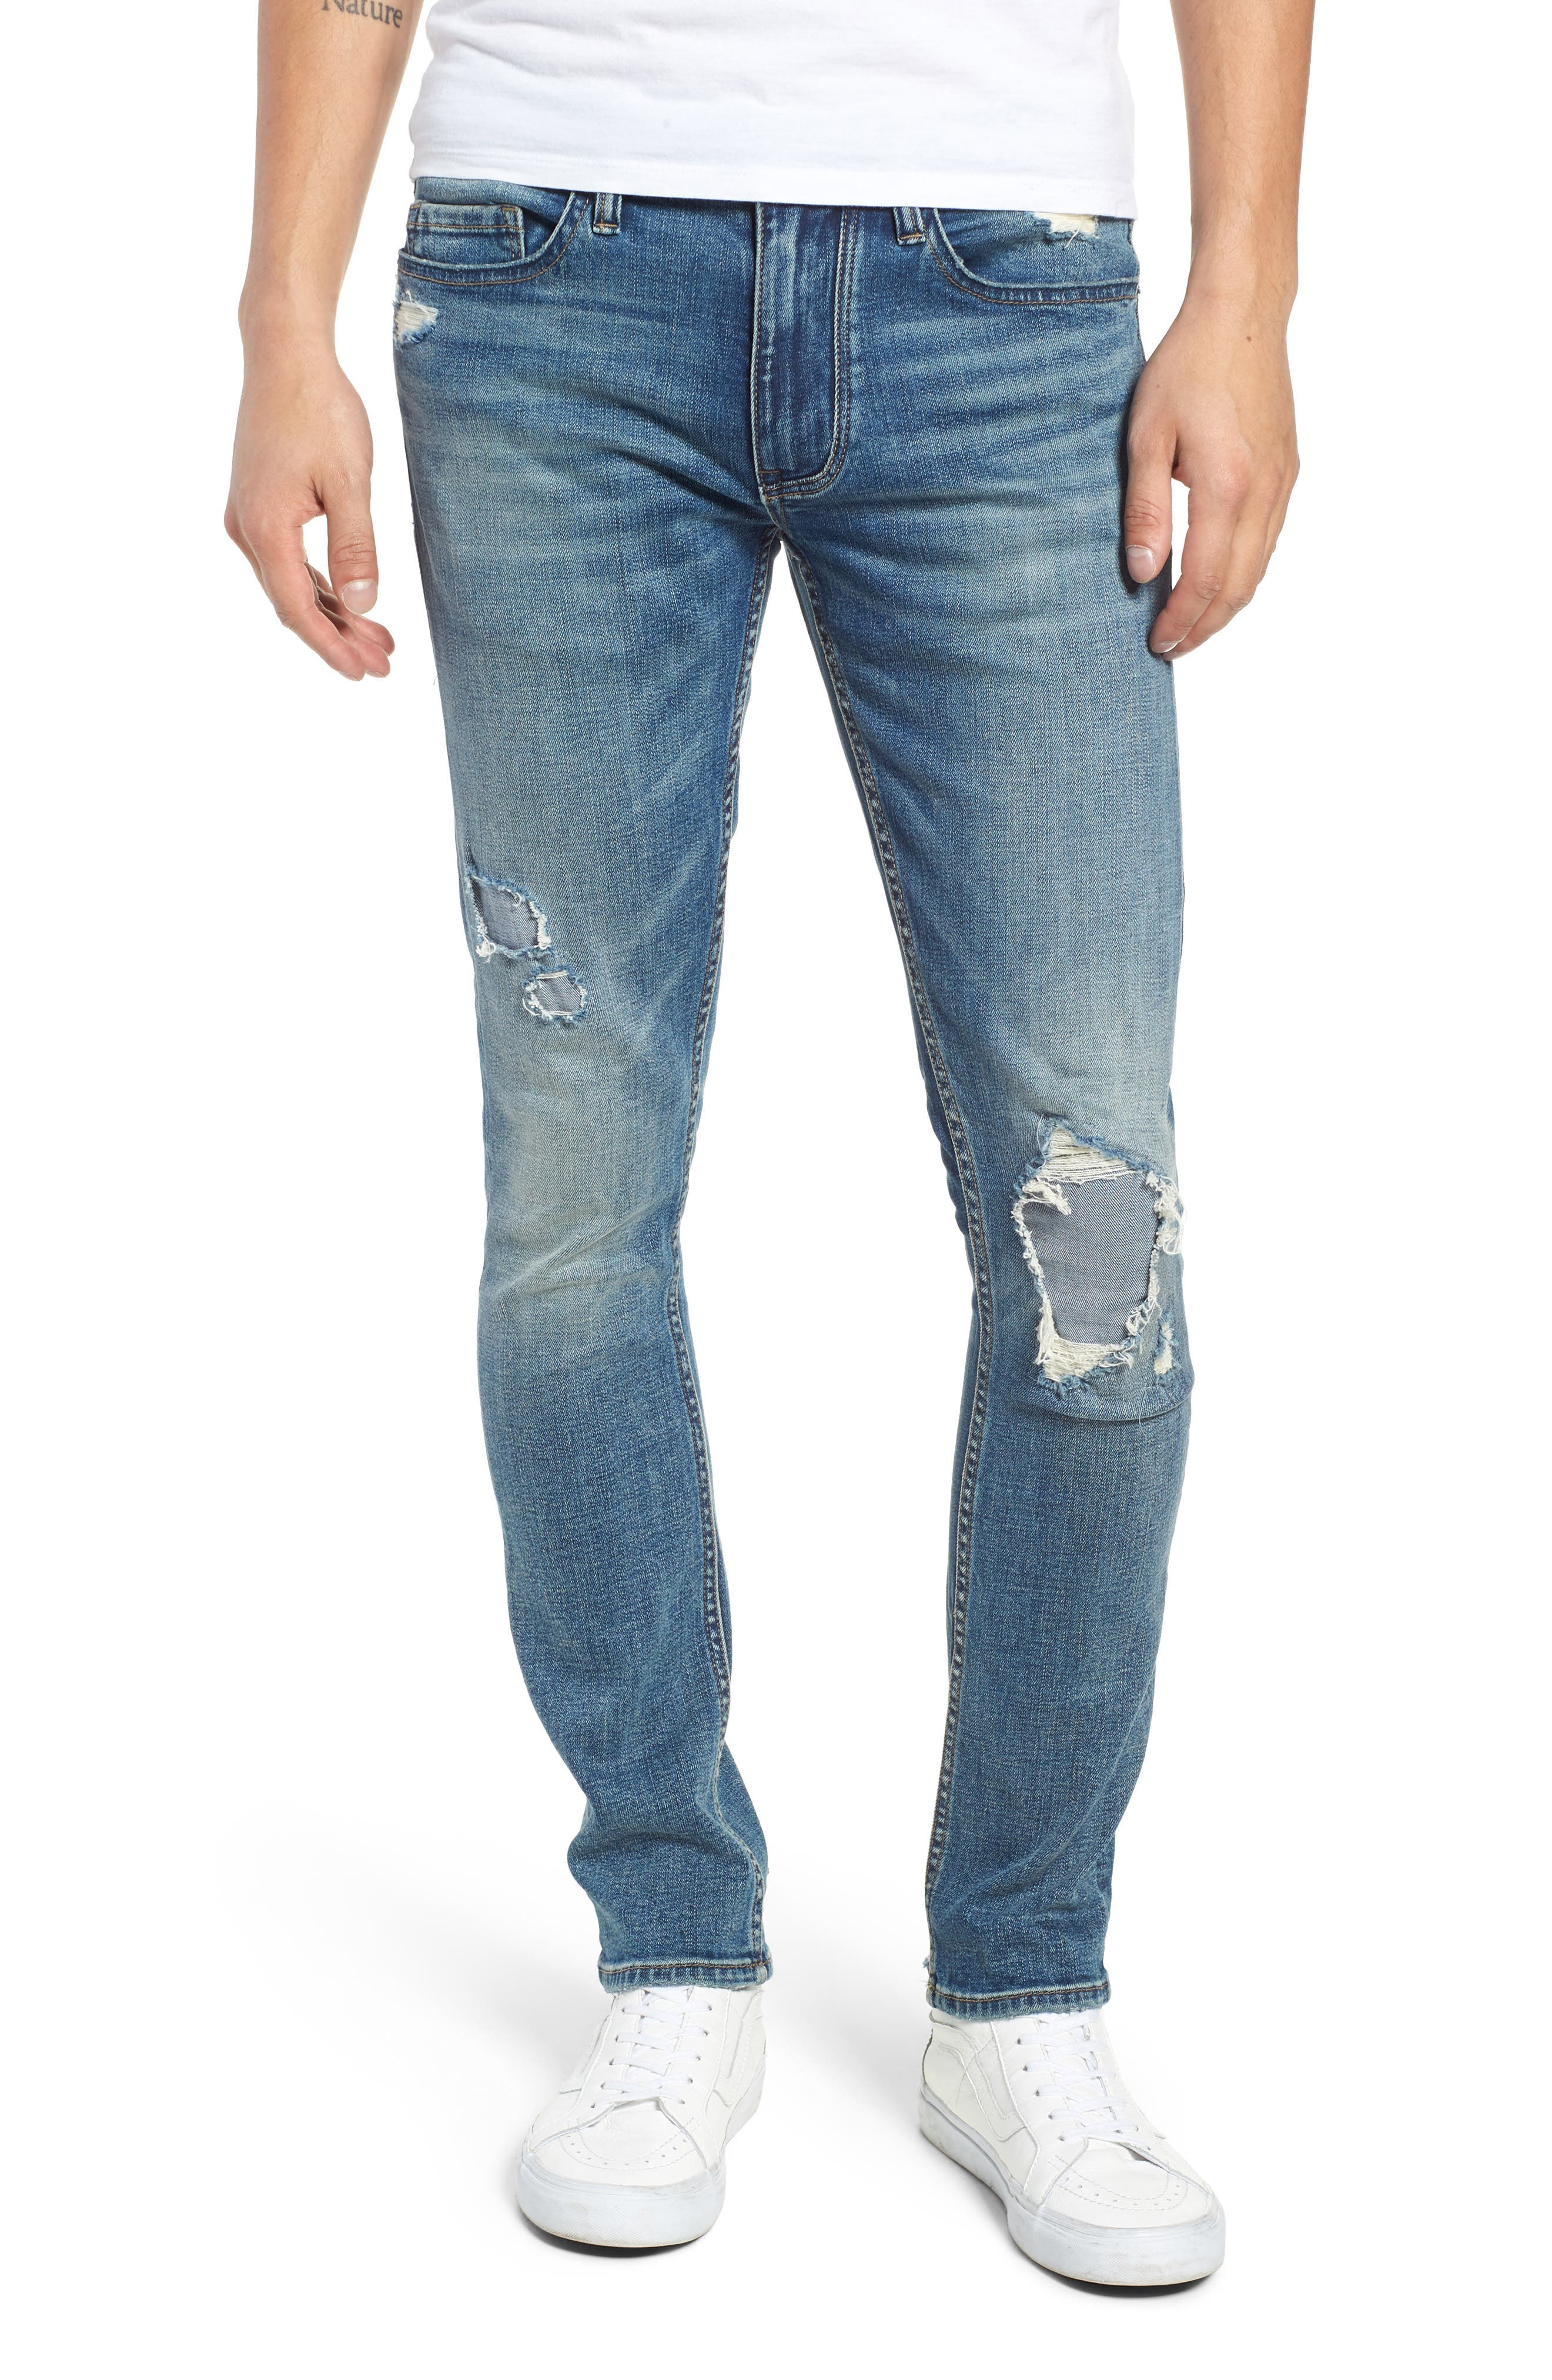 Horatio Skinny Fit Jeans,                             Main thumbnail 1, color,                             SUDDEN PROFIT